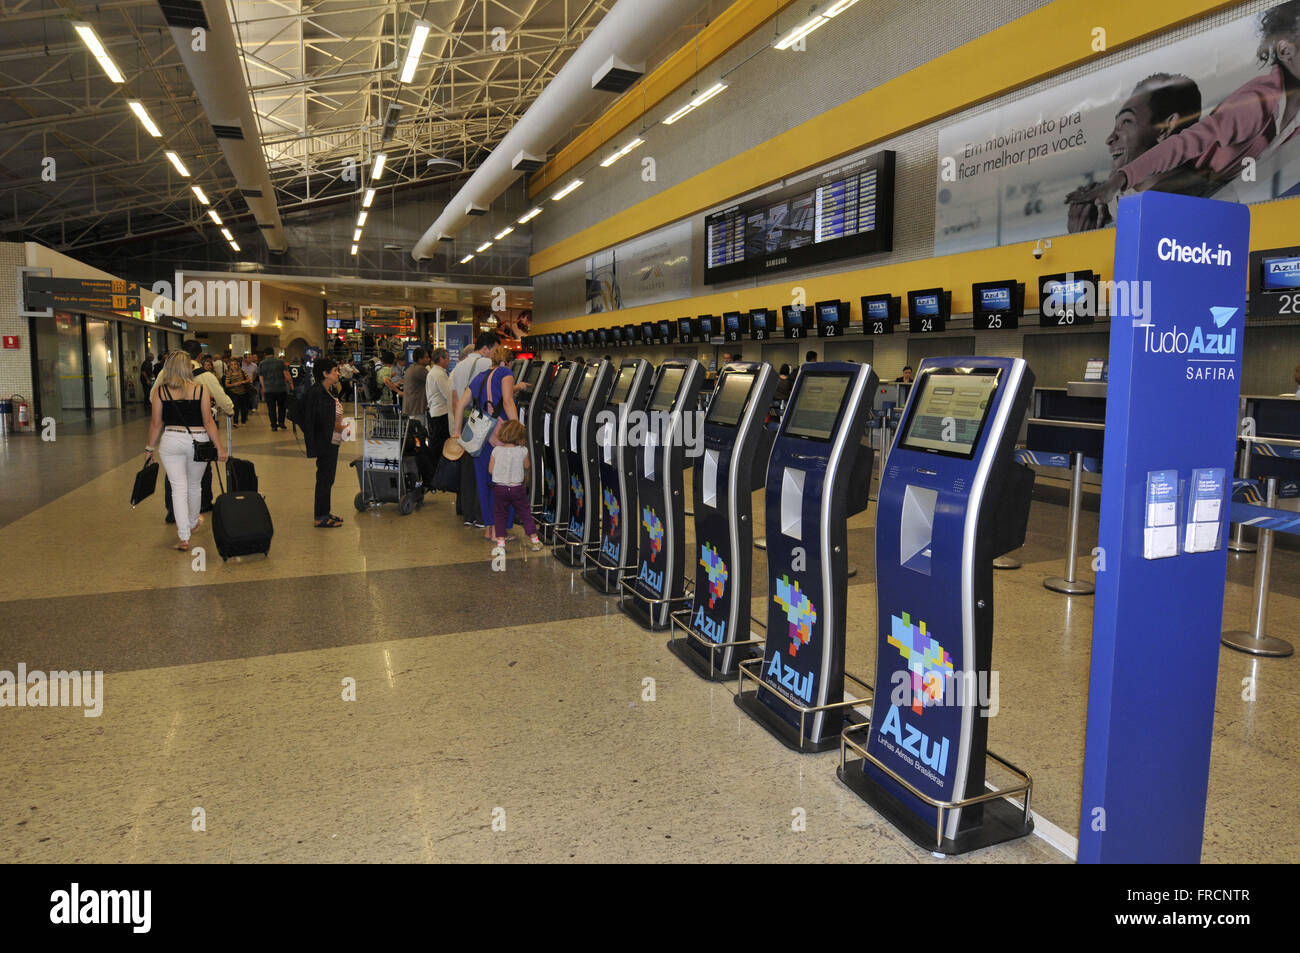 Passengers in the terminal check-in area of Guarulhos International Airport - Stock Image